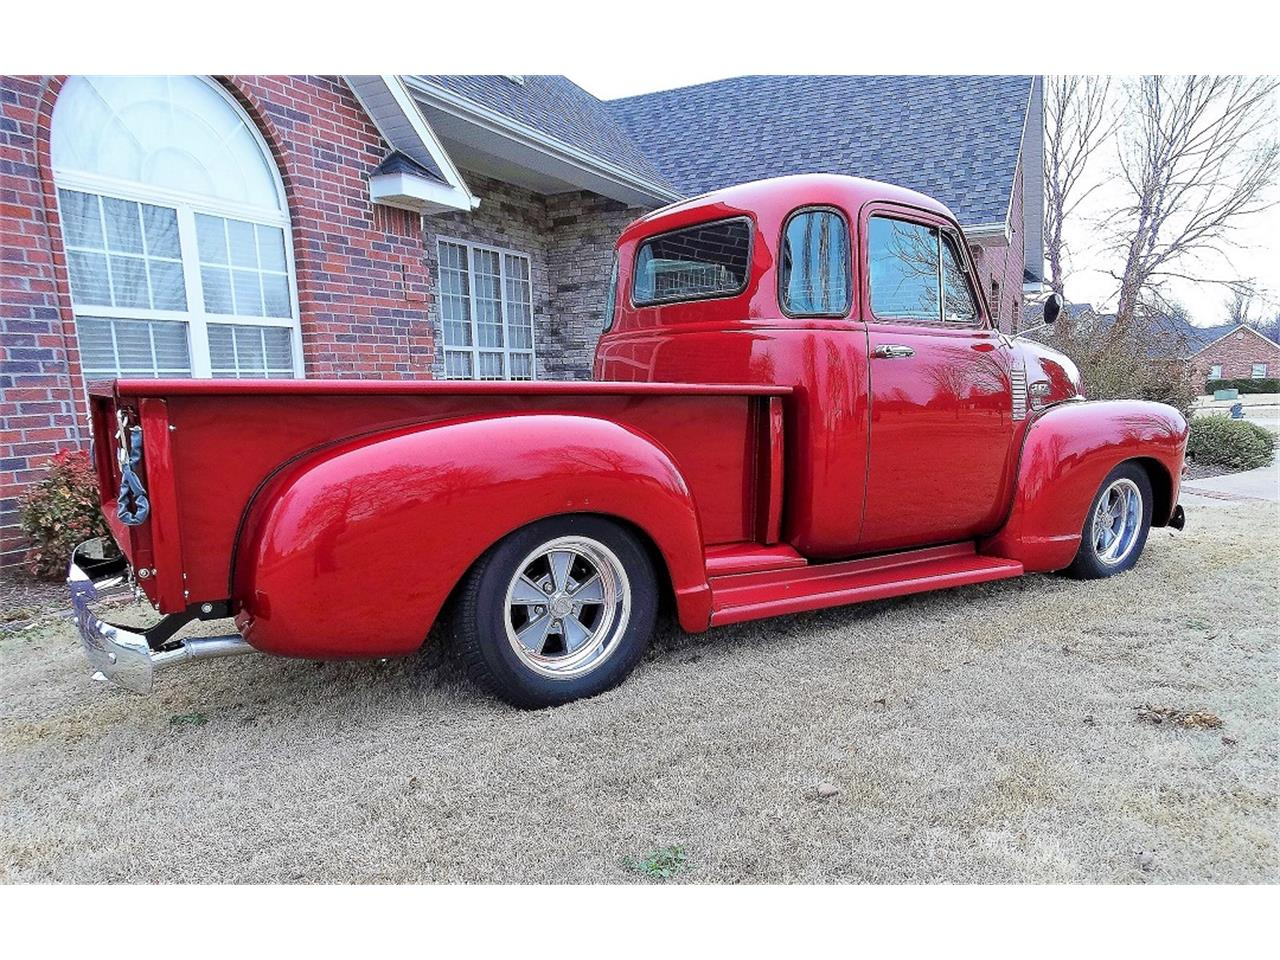 Large Picture of Classic '54 GMC Pickup located in Arkansas - $54,900.00 Offered by a Private Seller - N8MG